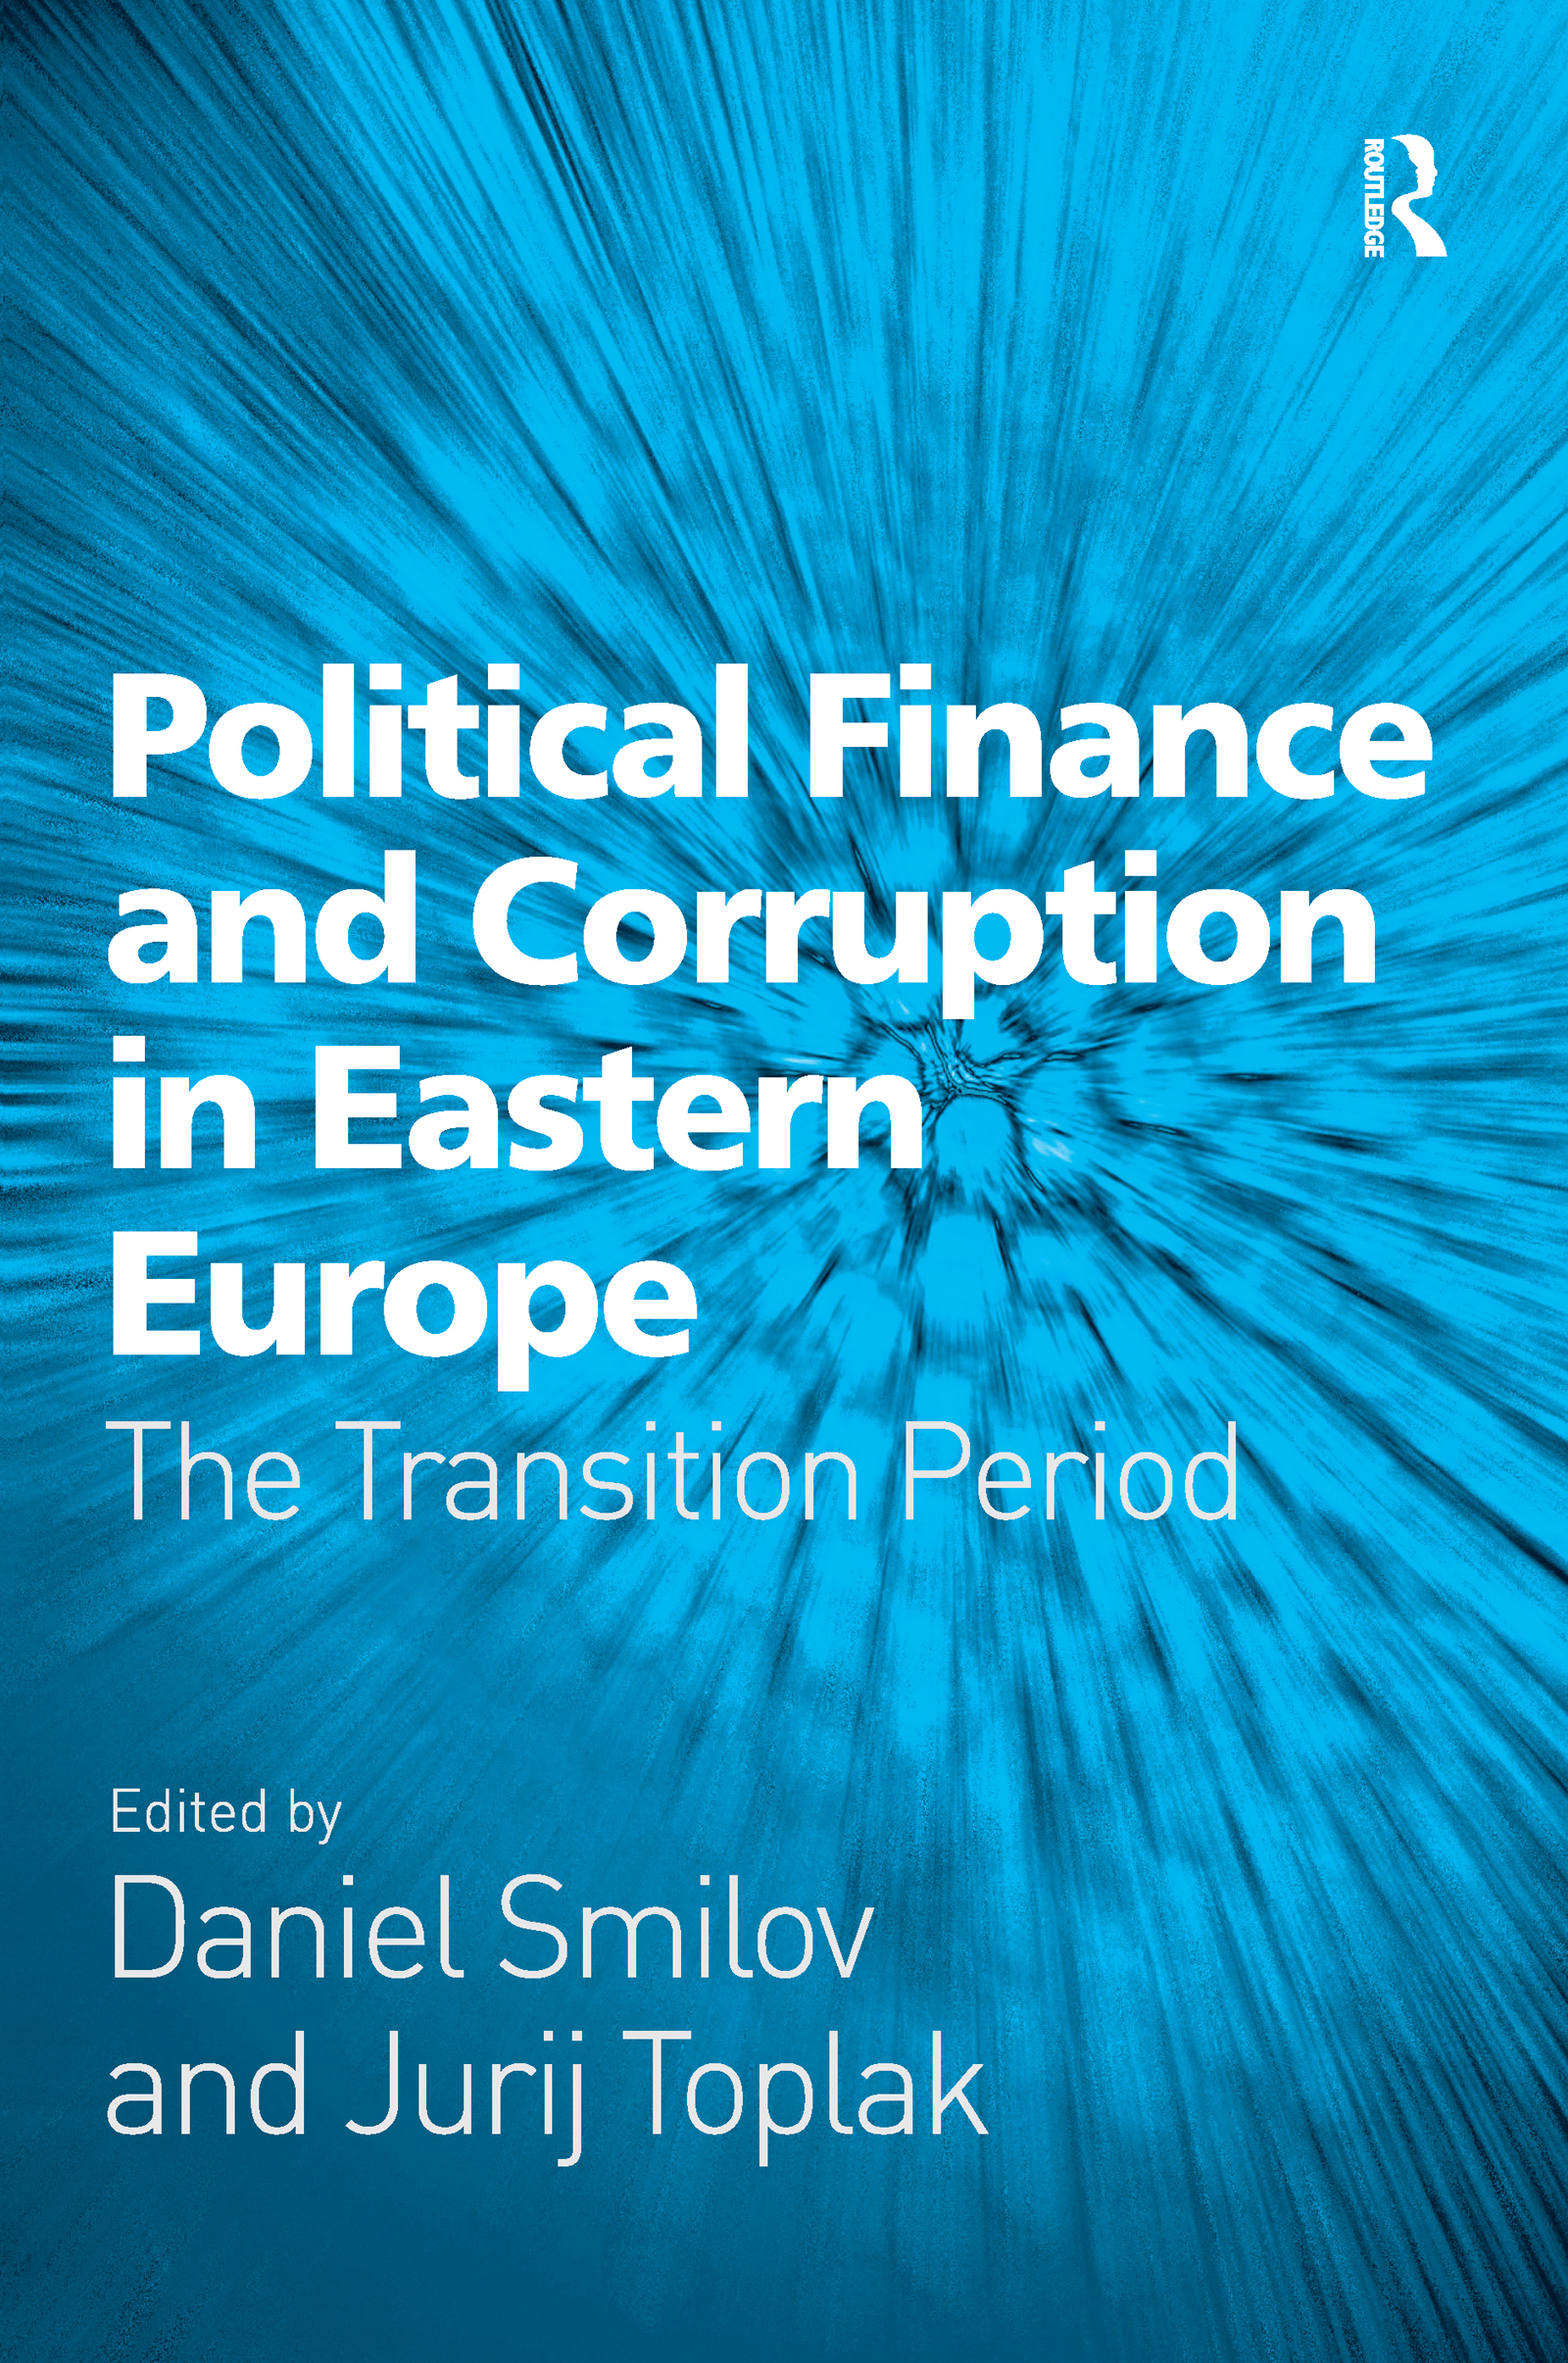 Political Finance and Corruption in Eastern Europe